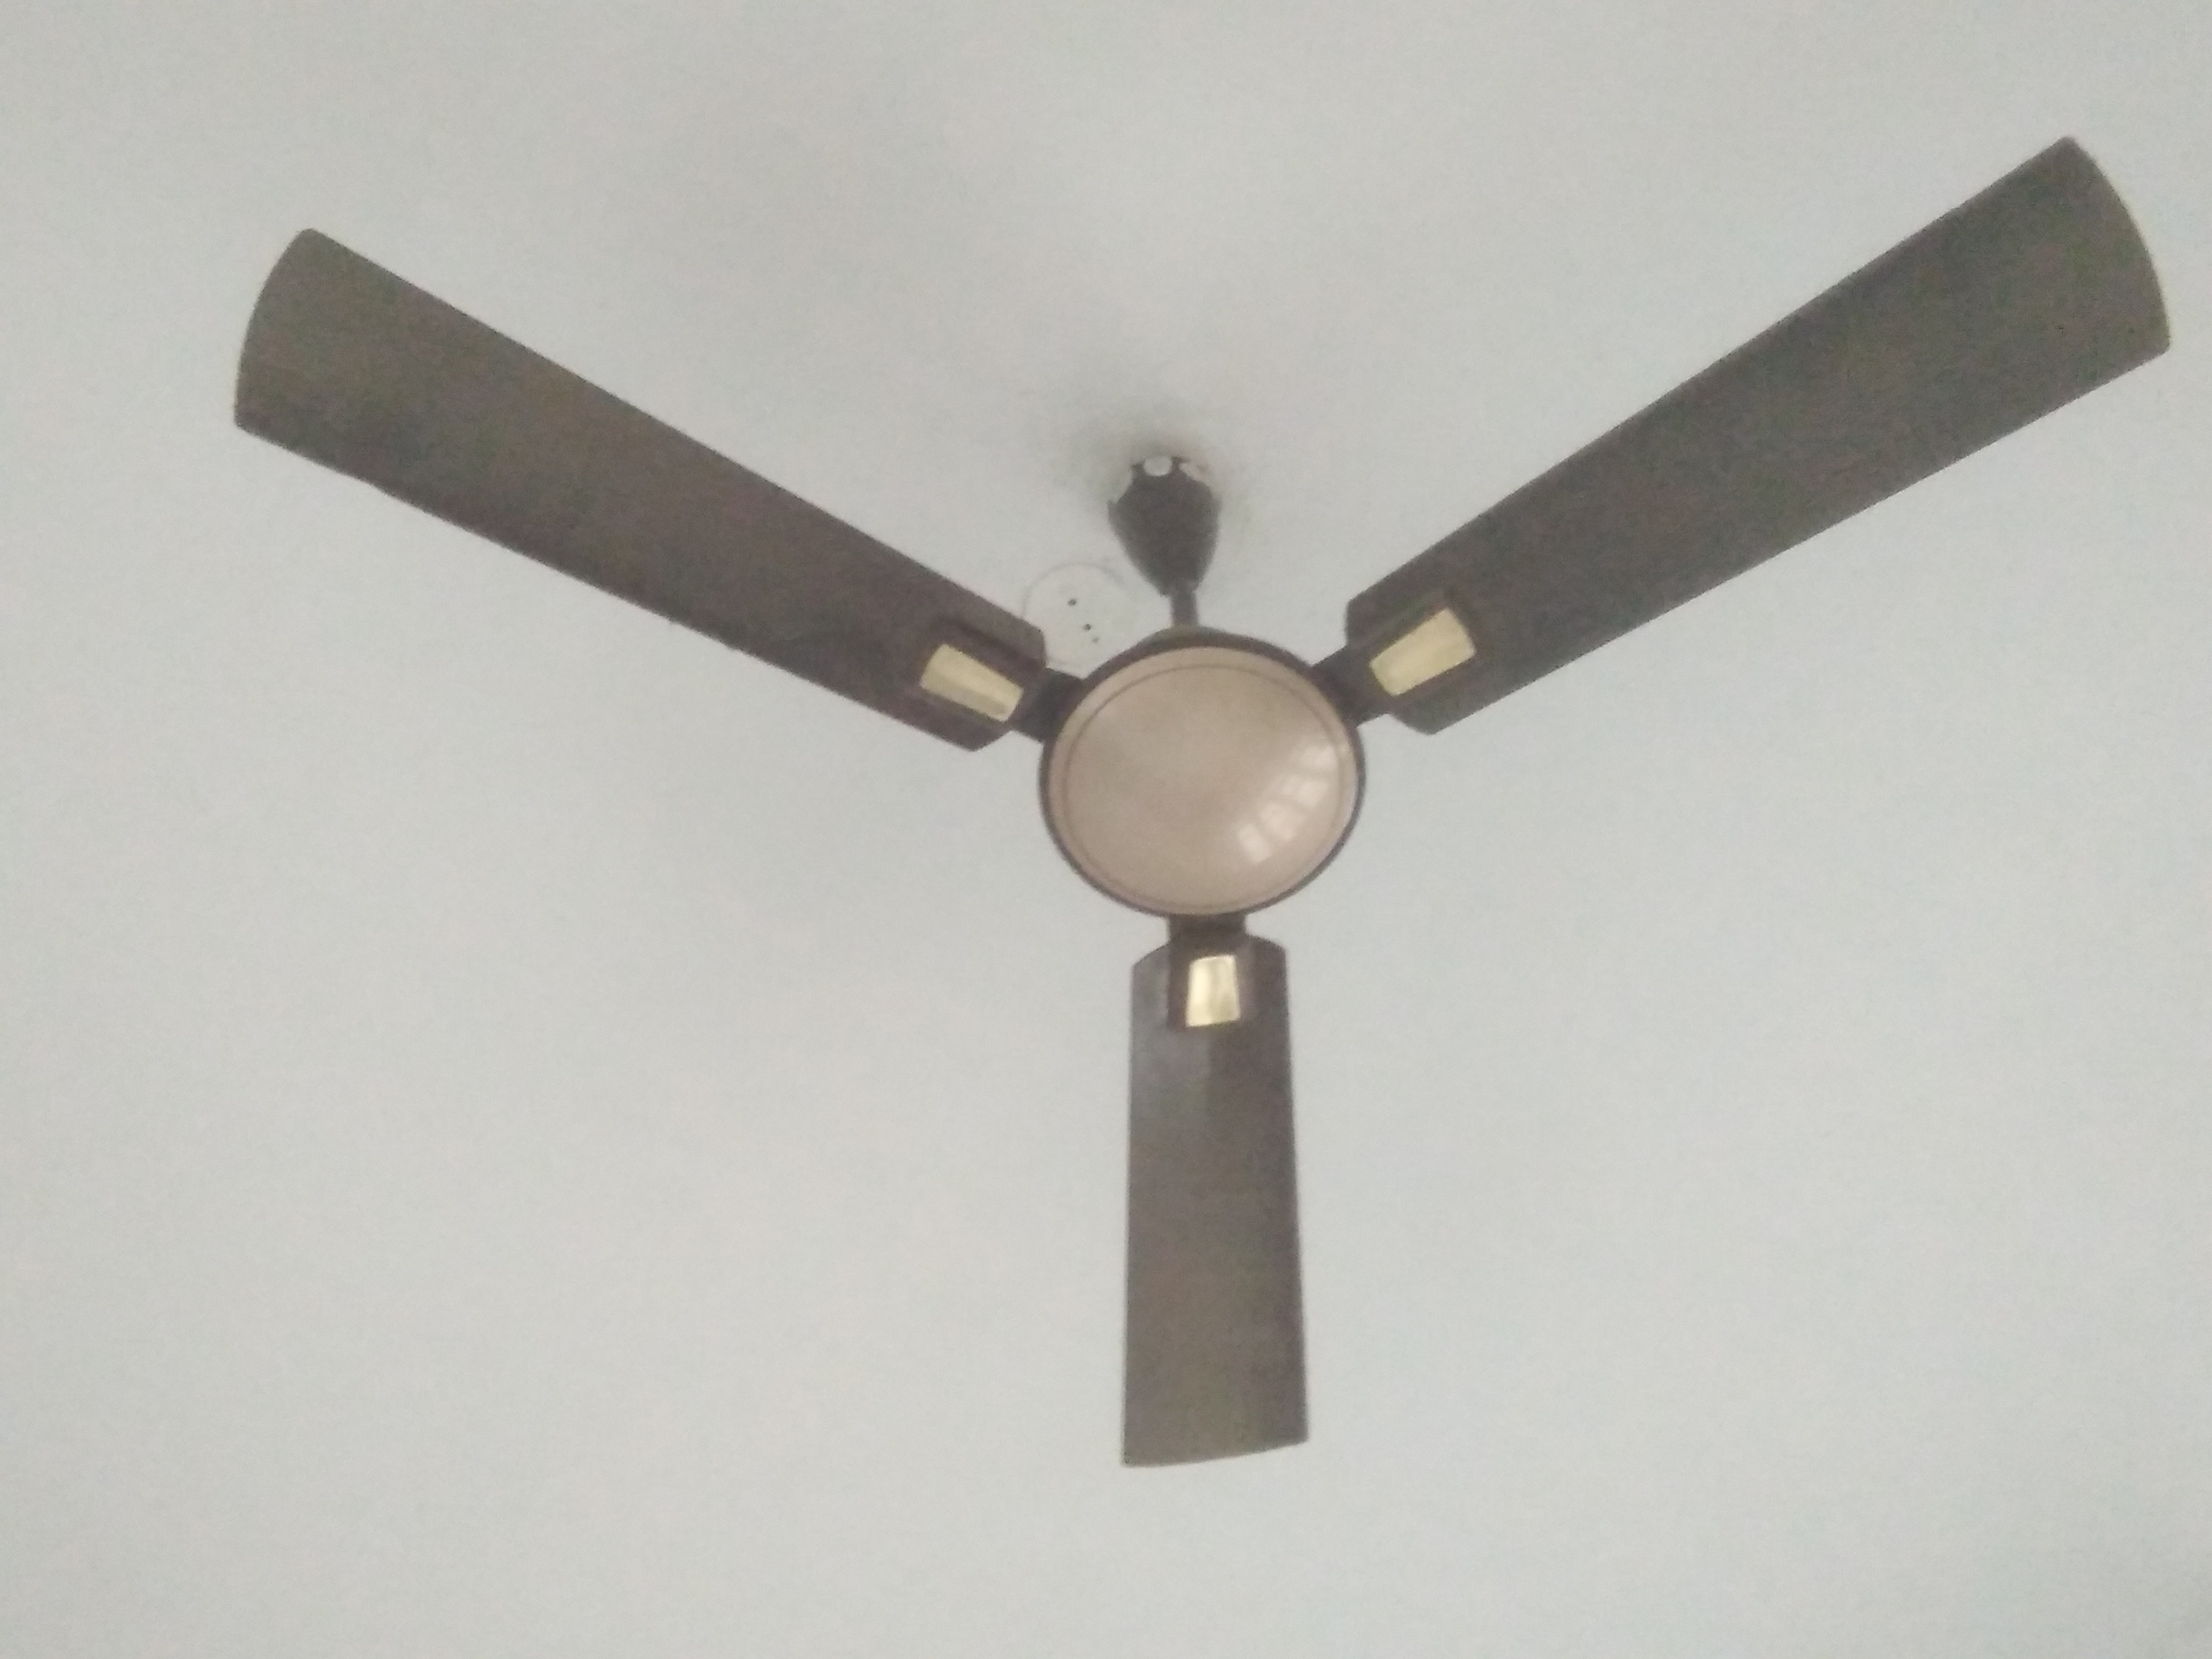 Bajaj ceiling fans review bajaj ceiling fans price bajaj ceiling at the time of rotating there is a sound from fan which diaturb us to sleep now i repared it and using but now i am not much satisfied mozeypictures Choice Image